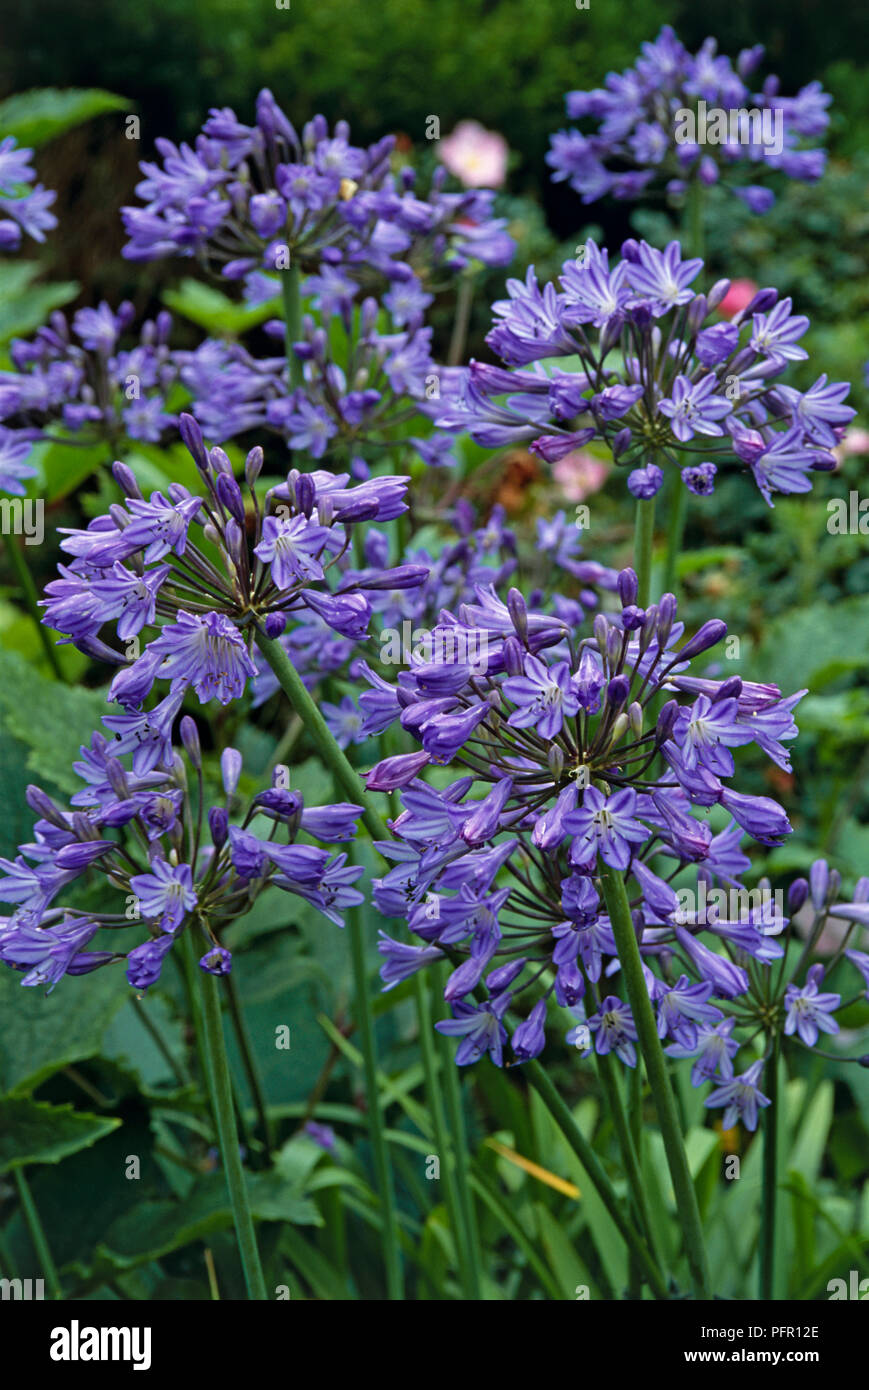 Agapanthus Headbourne Hybrids Lily Of The Nile Bearing Purple